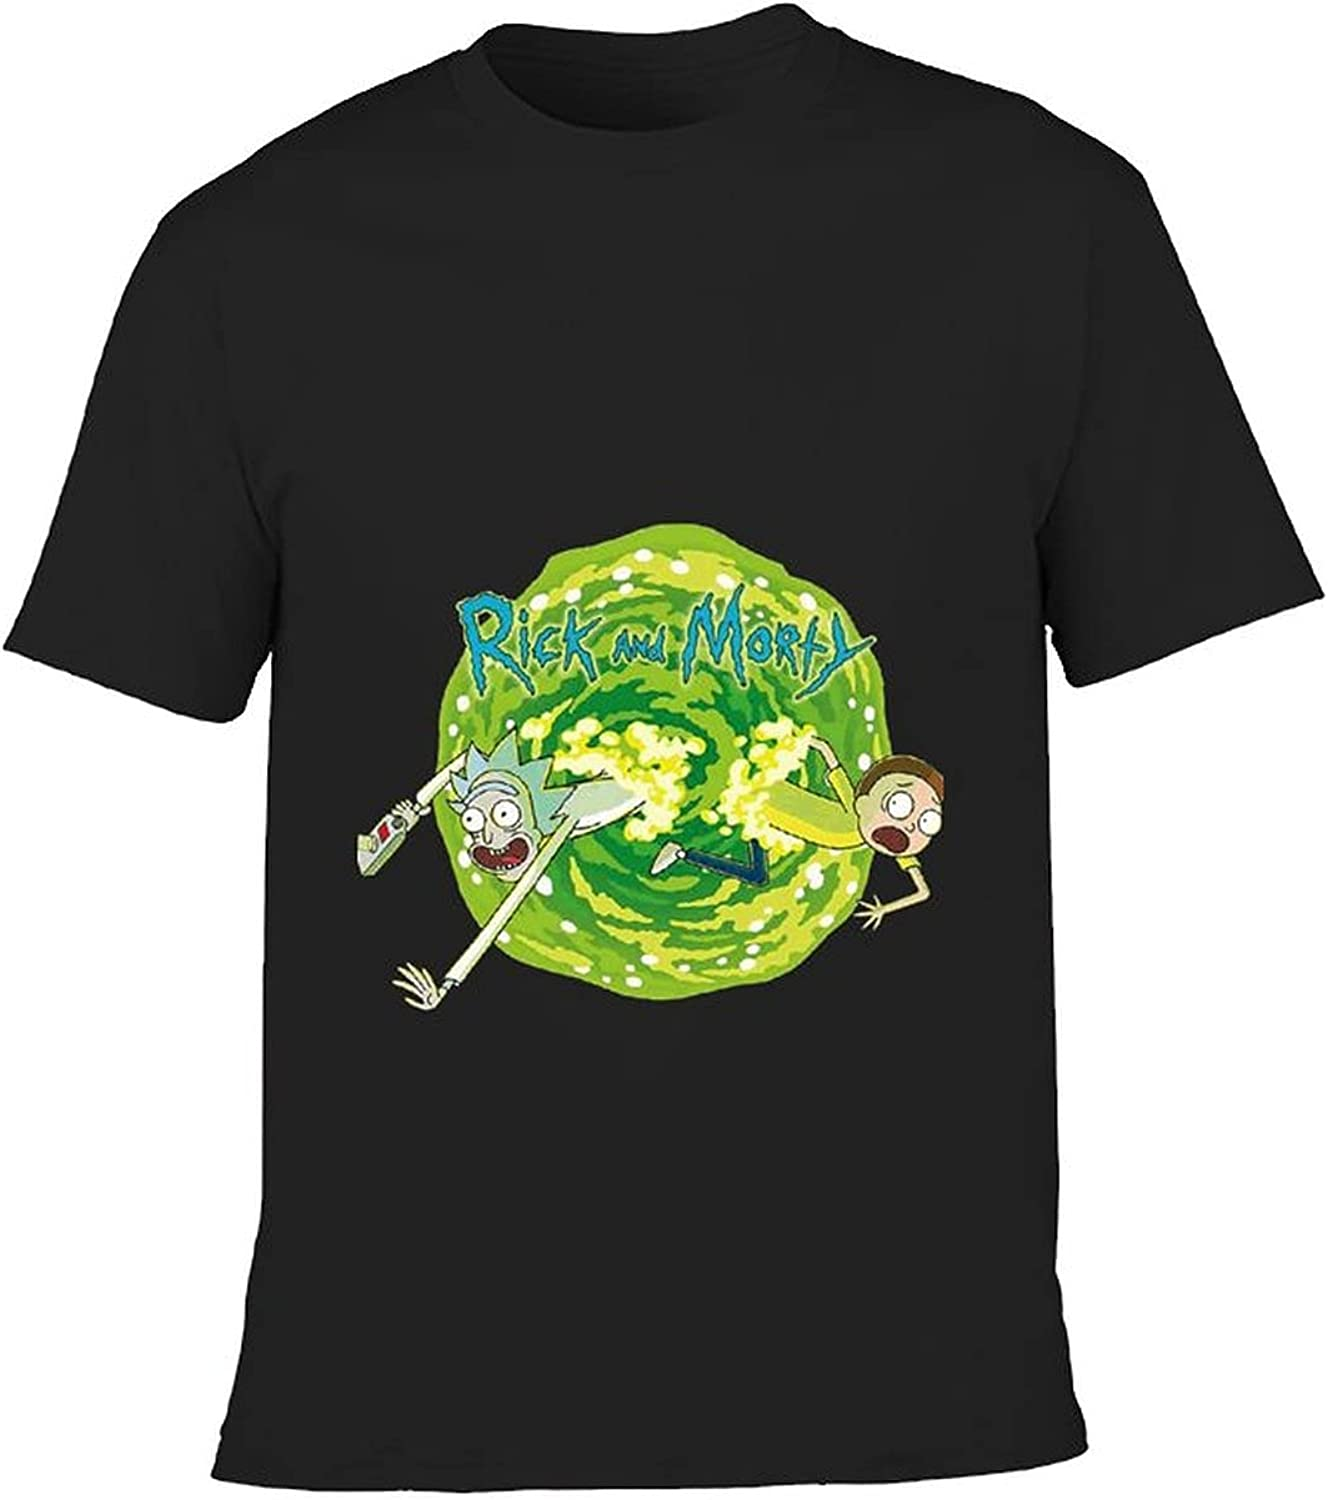 Rick and Morty Youth Short Sleeve Top T-Shirt, Boys T-Shirt